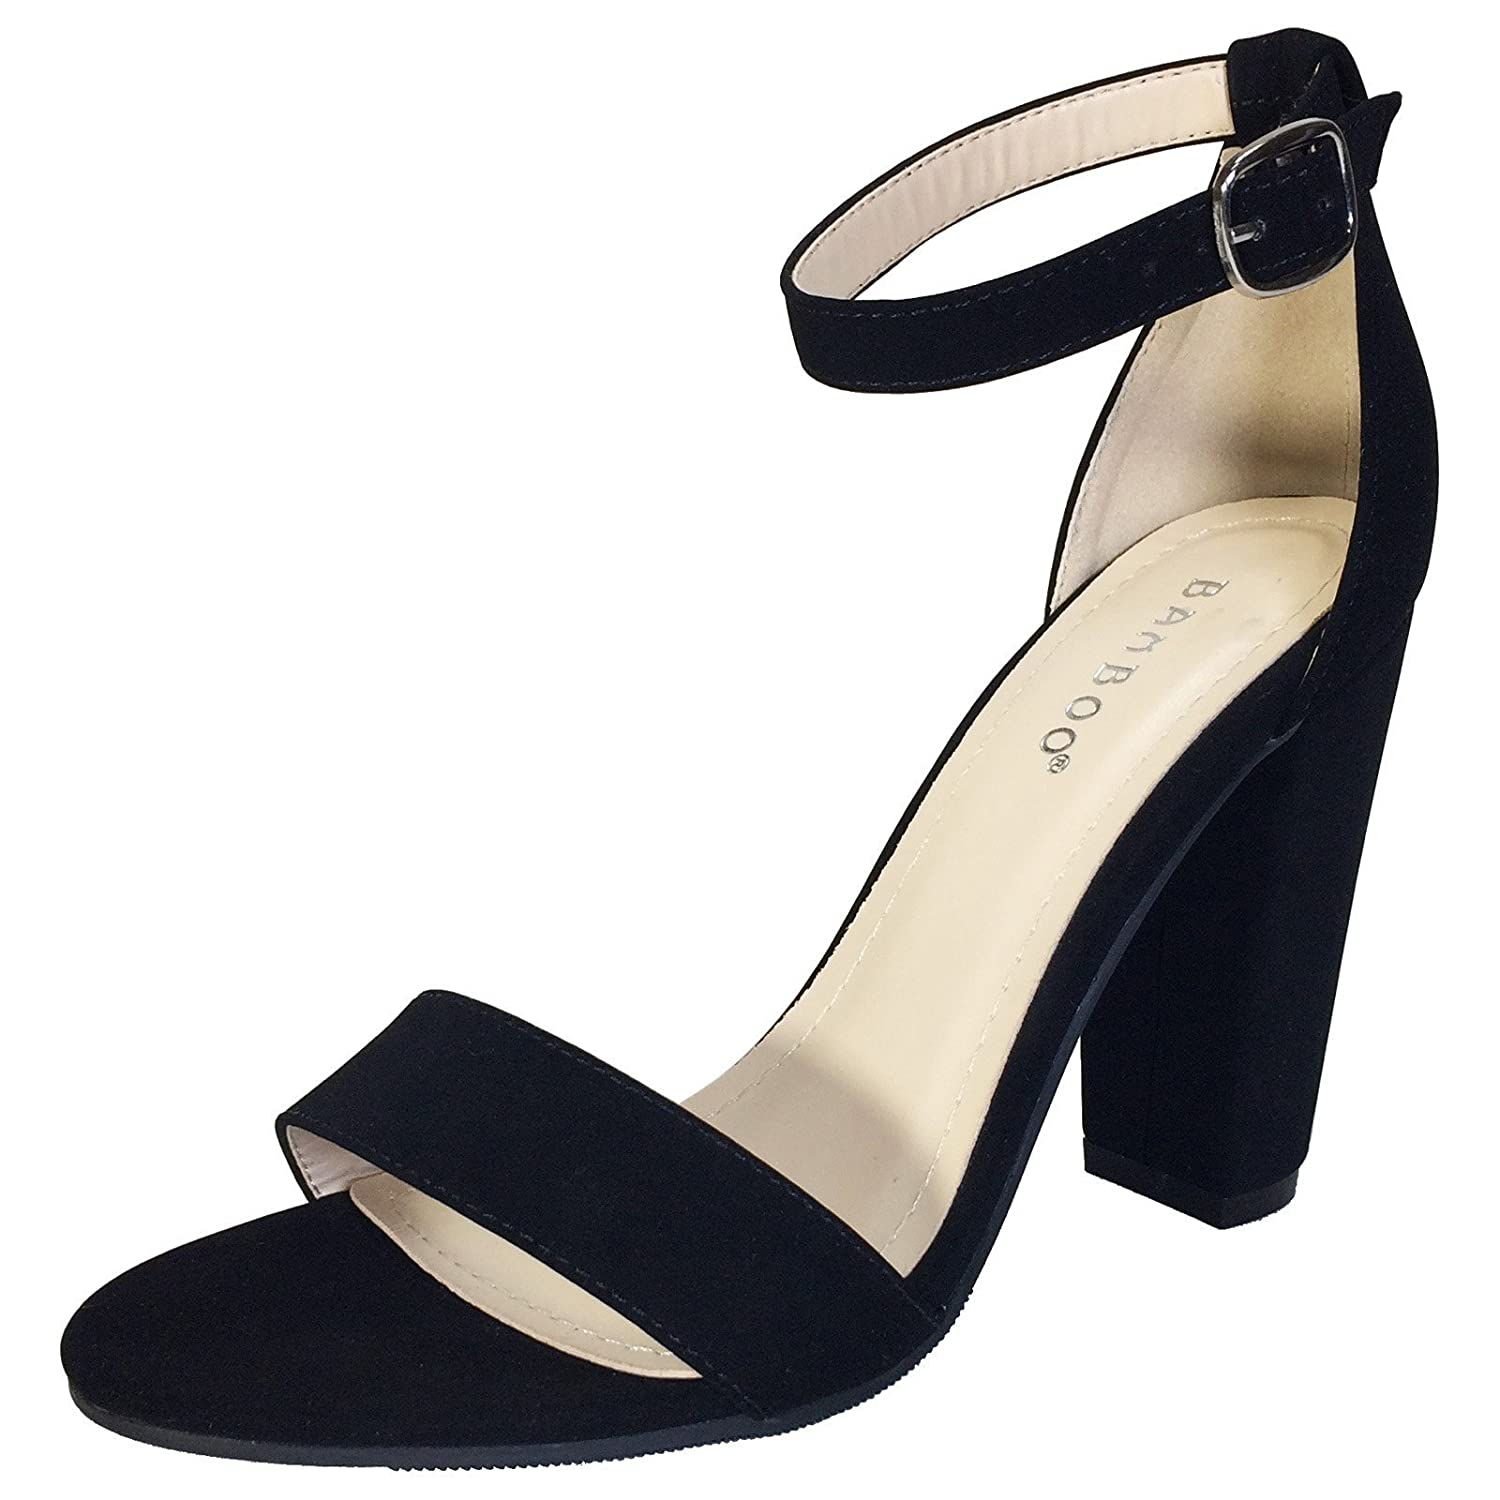 Black sandals with straps - Bamboo Women S Single Band Chunky Heel Sandal With Ankle Strap